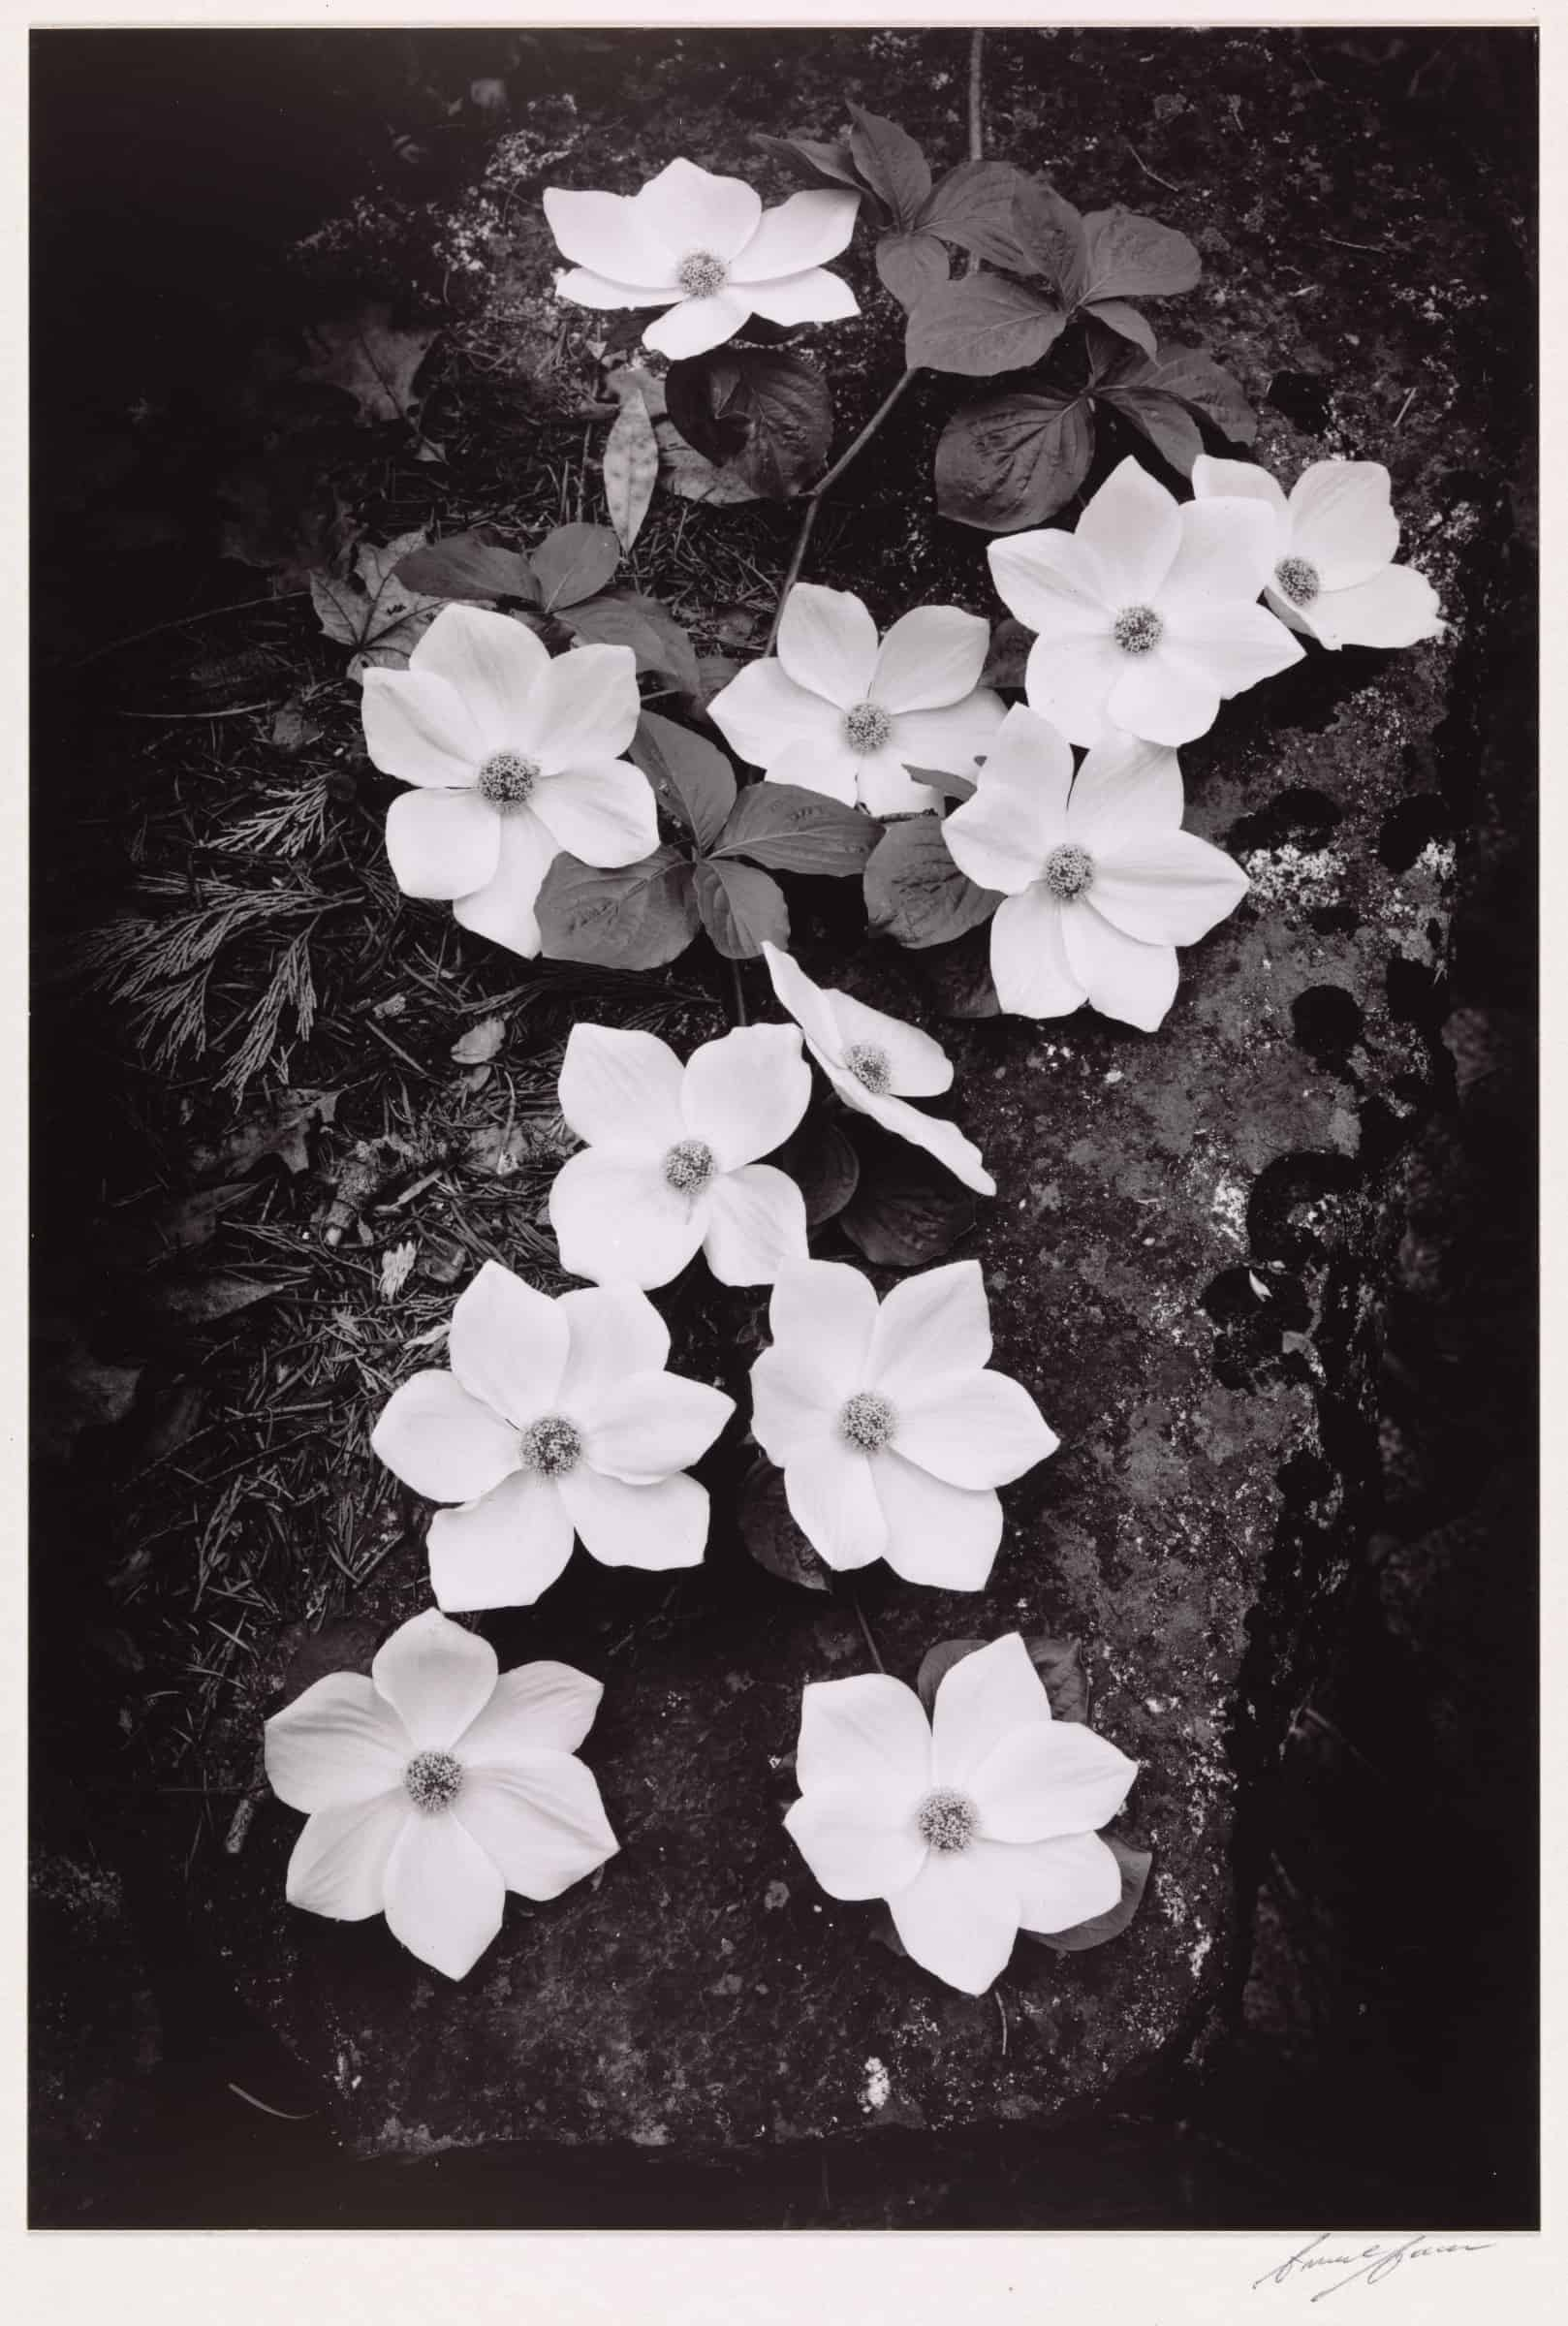 Ansel Adams: Compositions in Nature